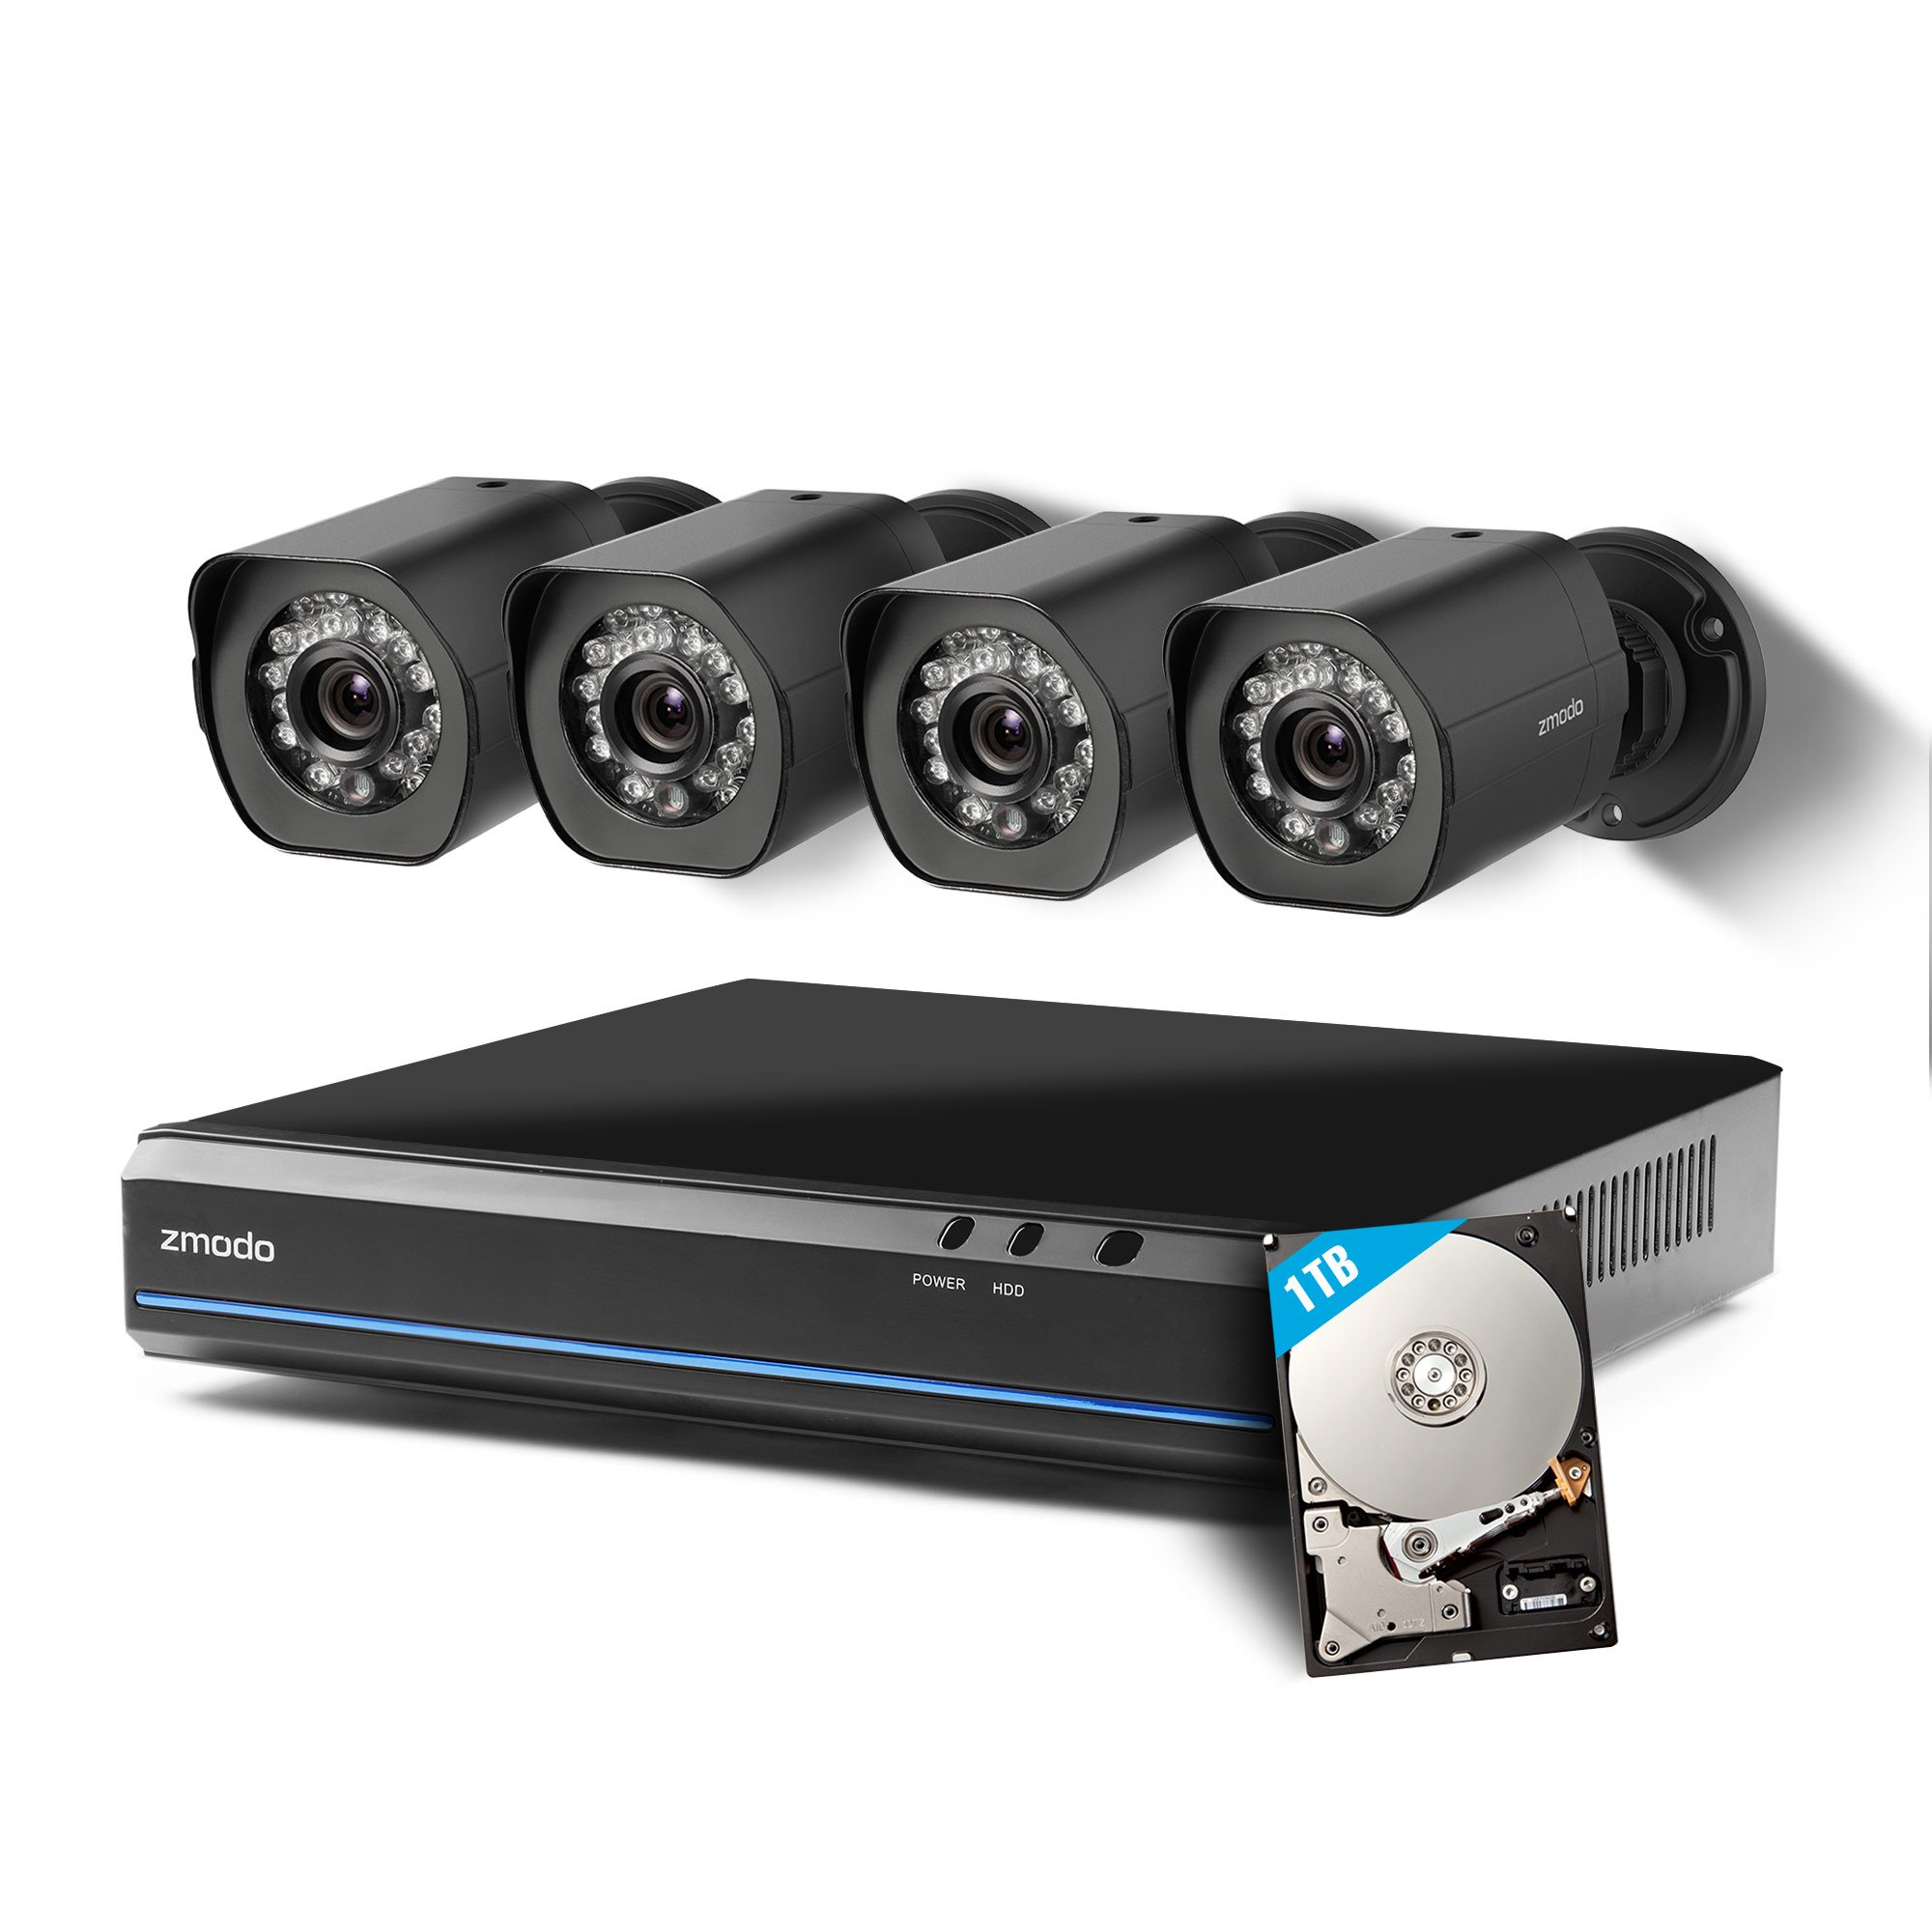 Zmodo 4 Channel HDMI NVR 4x720p HD Security Camera Smart Simplified PoE System (1TB HDD)